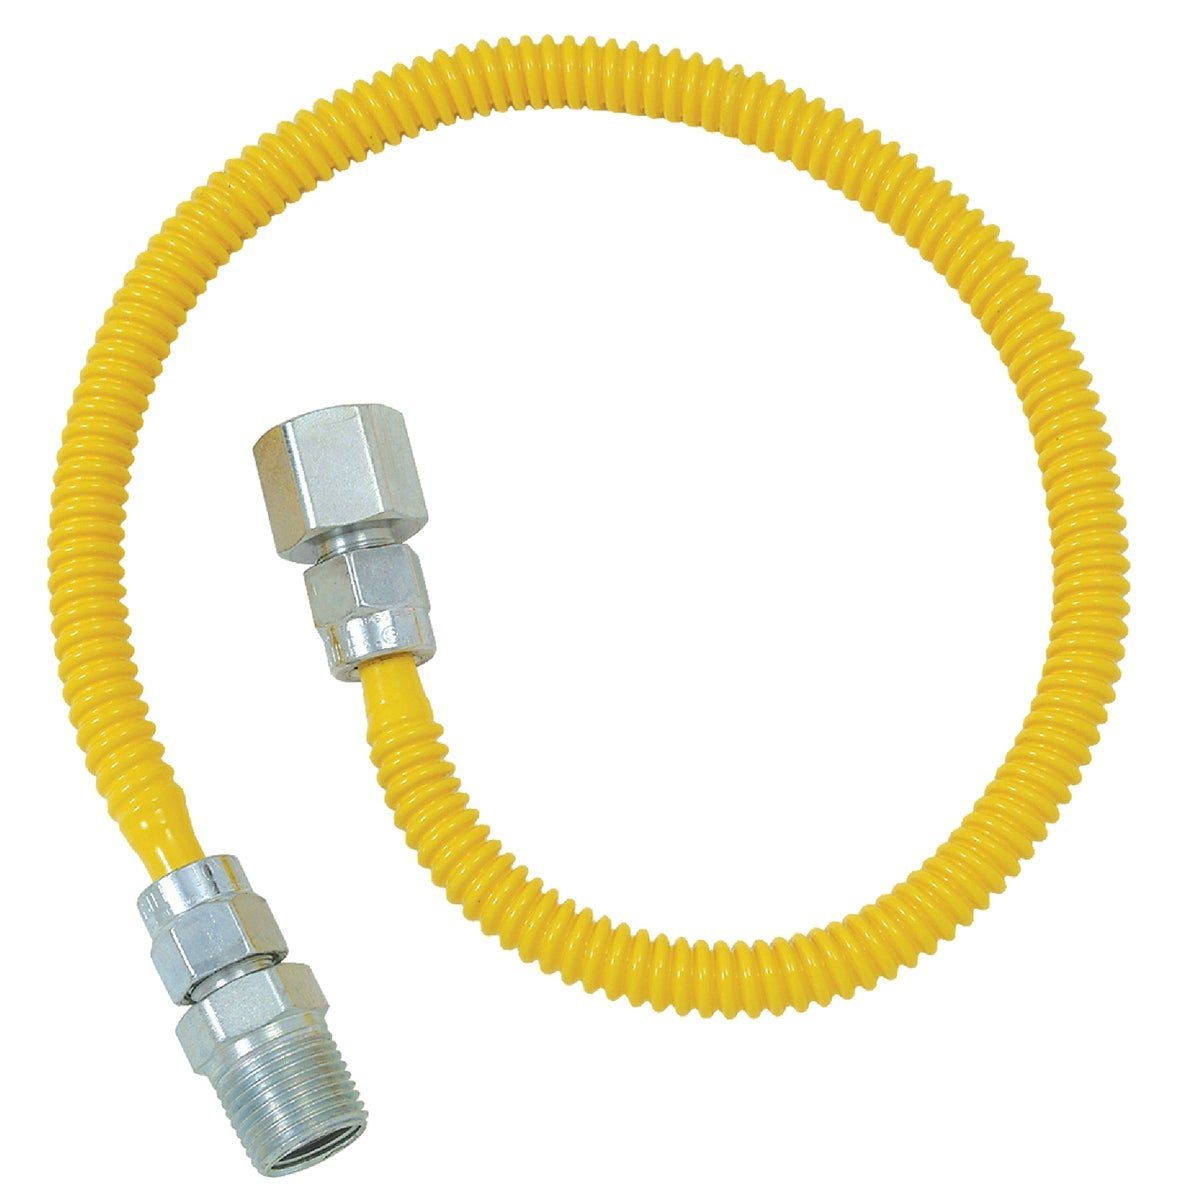 3/8X36 GAS CONNECTOR - CSSL54-36P by Brass Craft